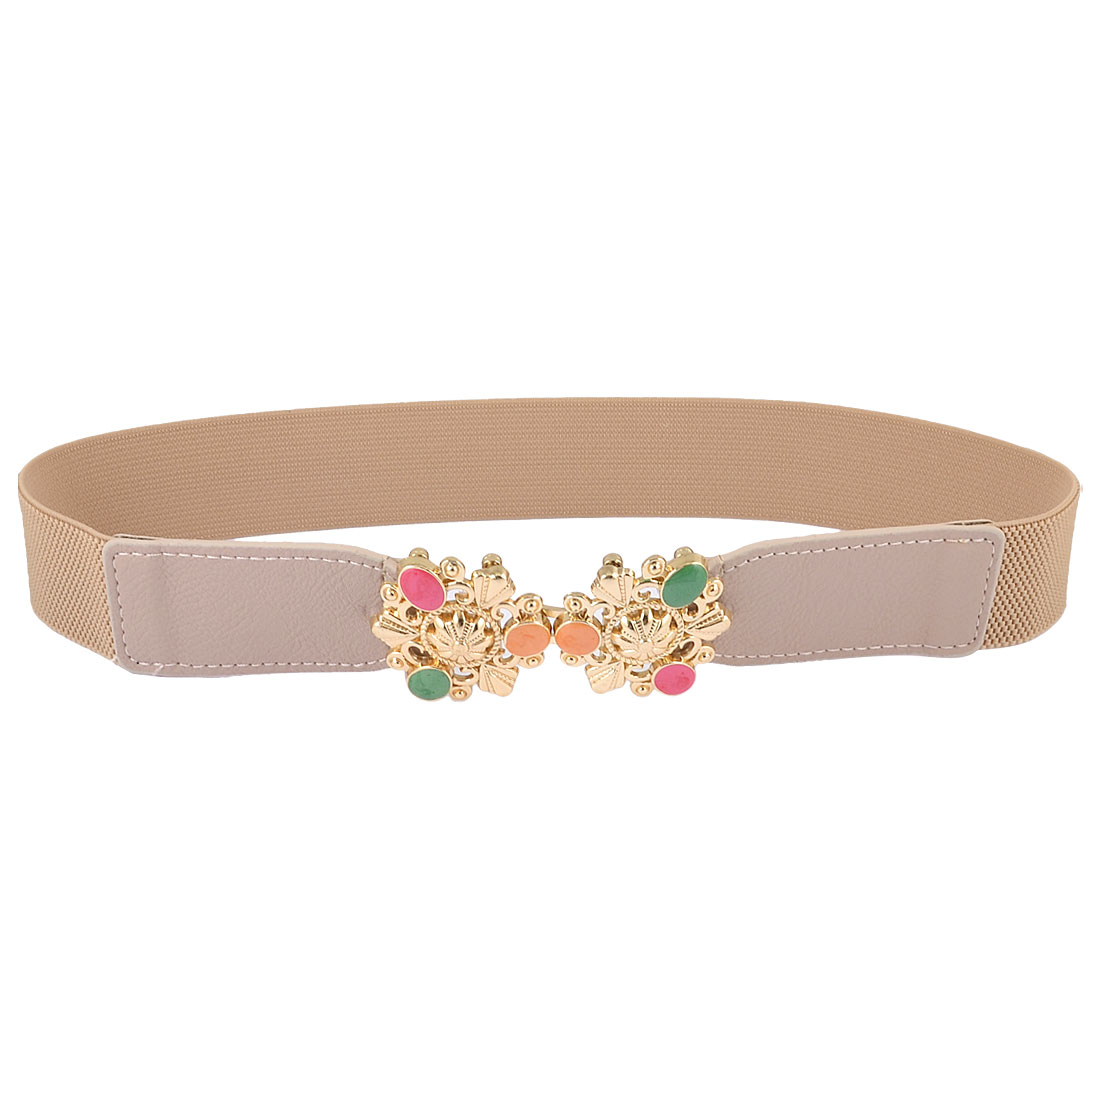 Women Metal Flower Decor Interlock Buckle Textured Stretch Cinch Belt Rosybrown